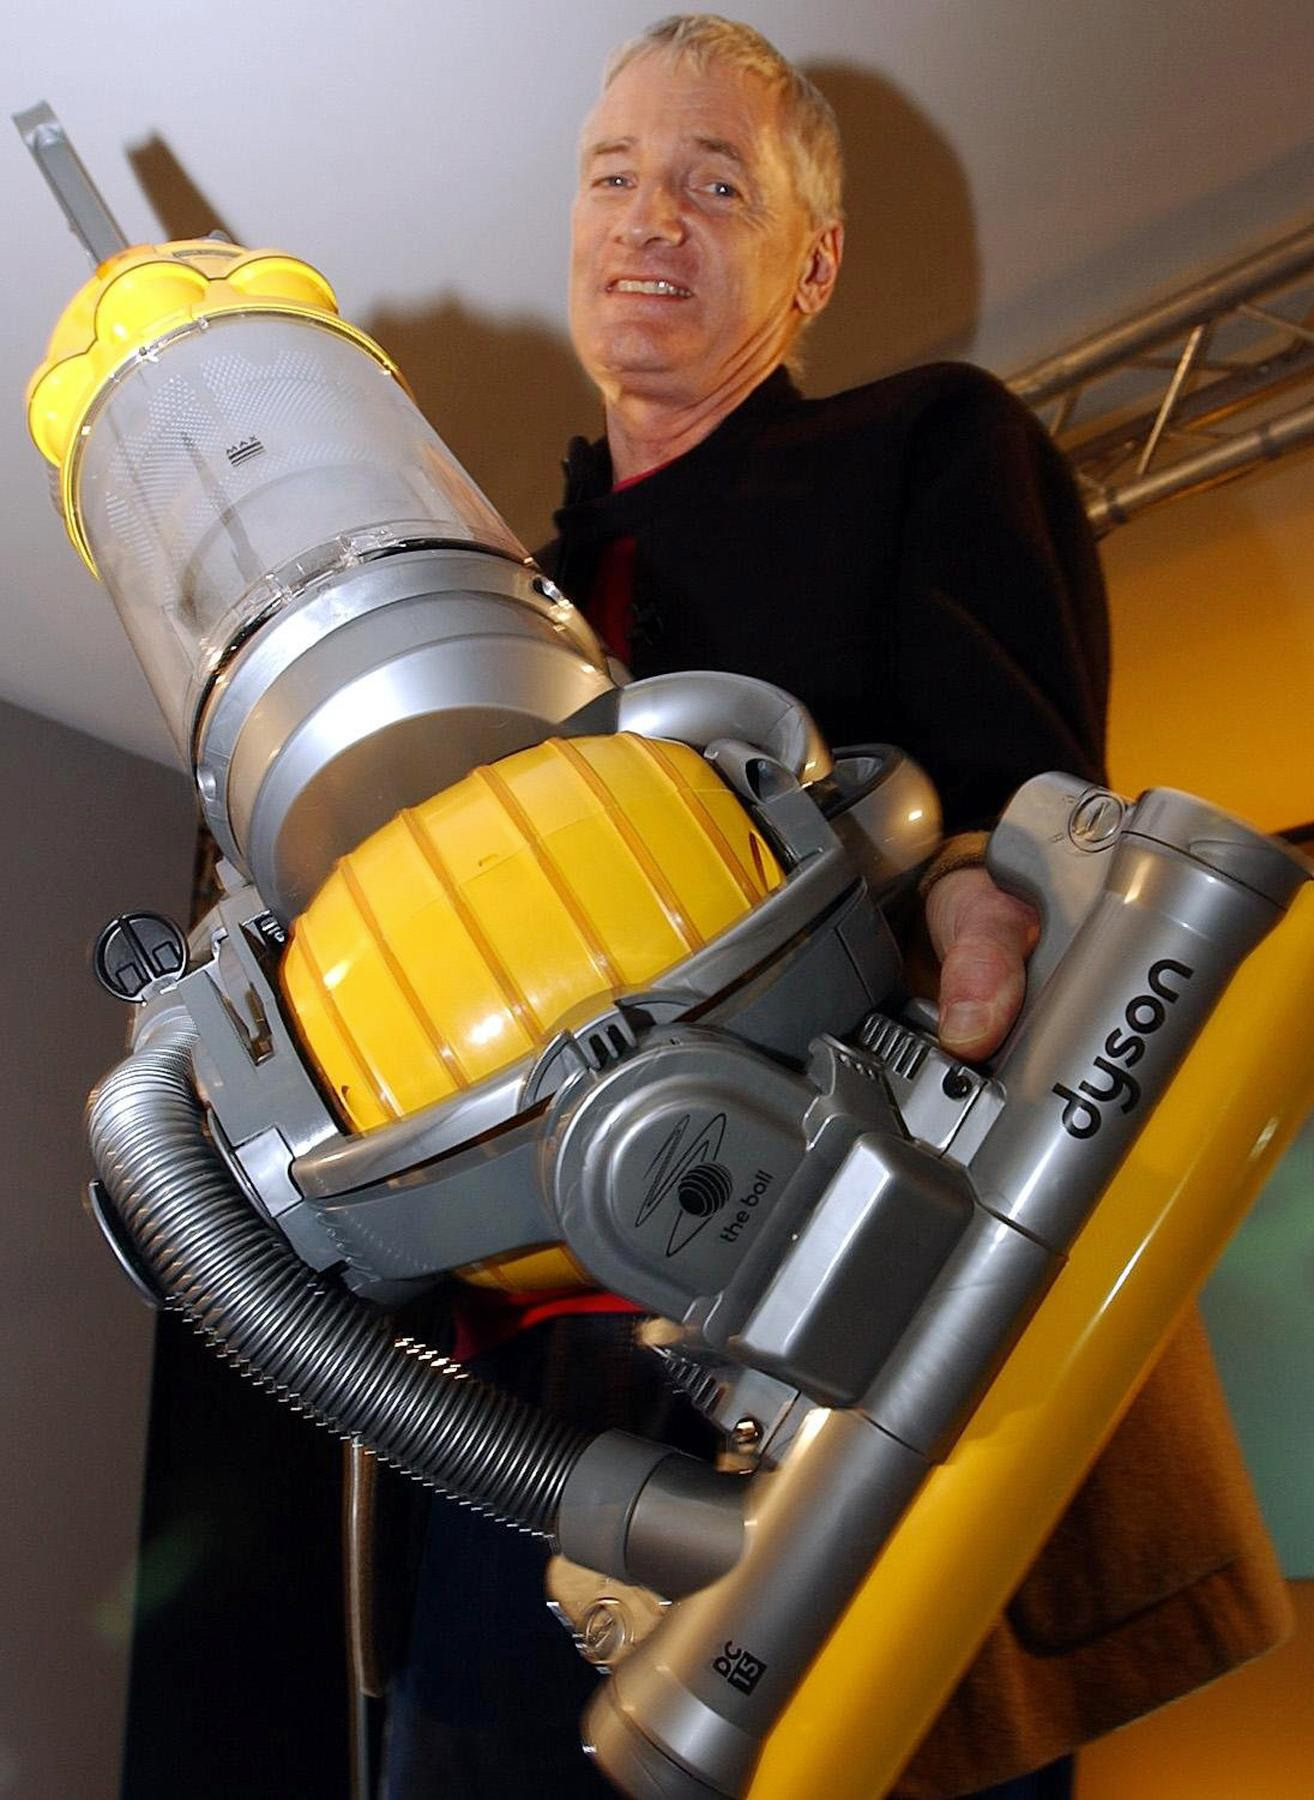 British inventor James Dyson with his new Dyson Ball vacuum cleaner during the product launch.